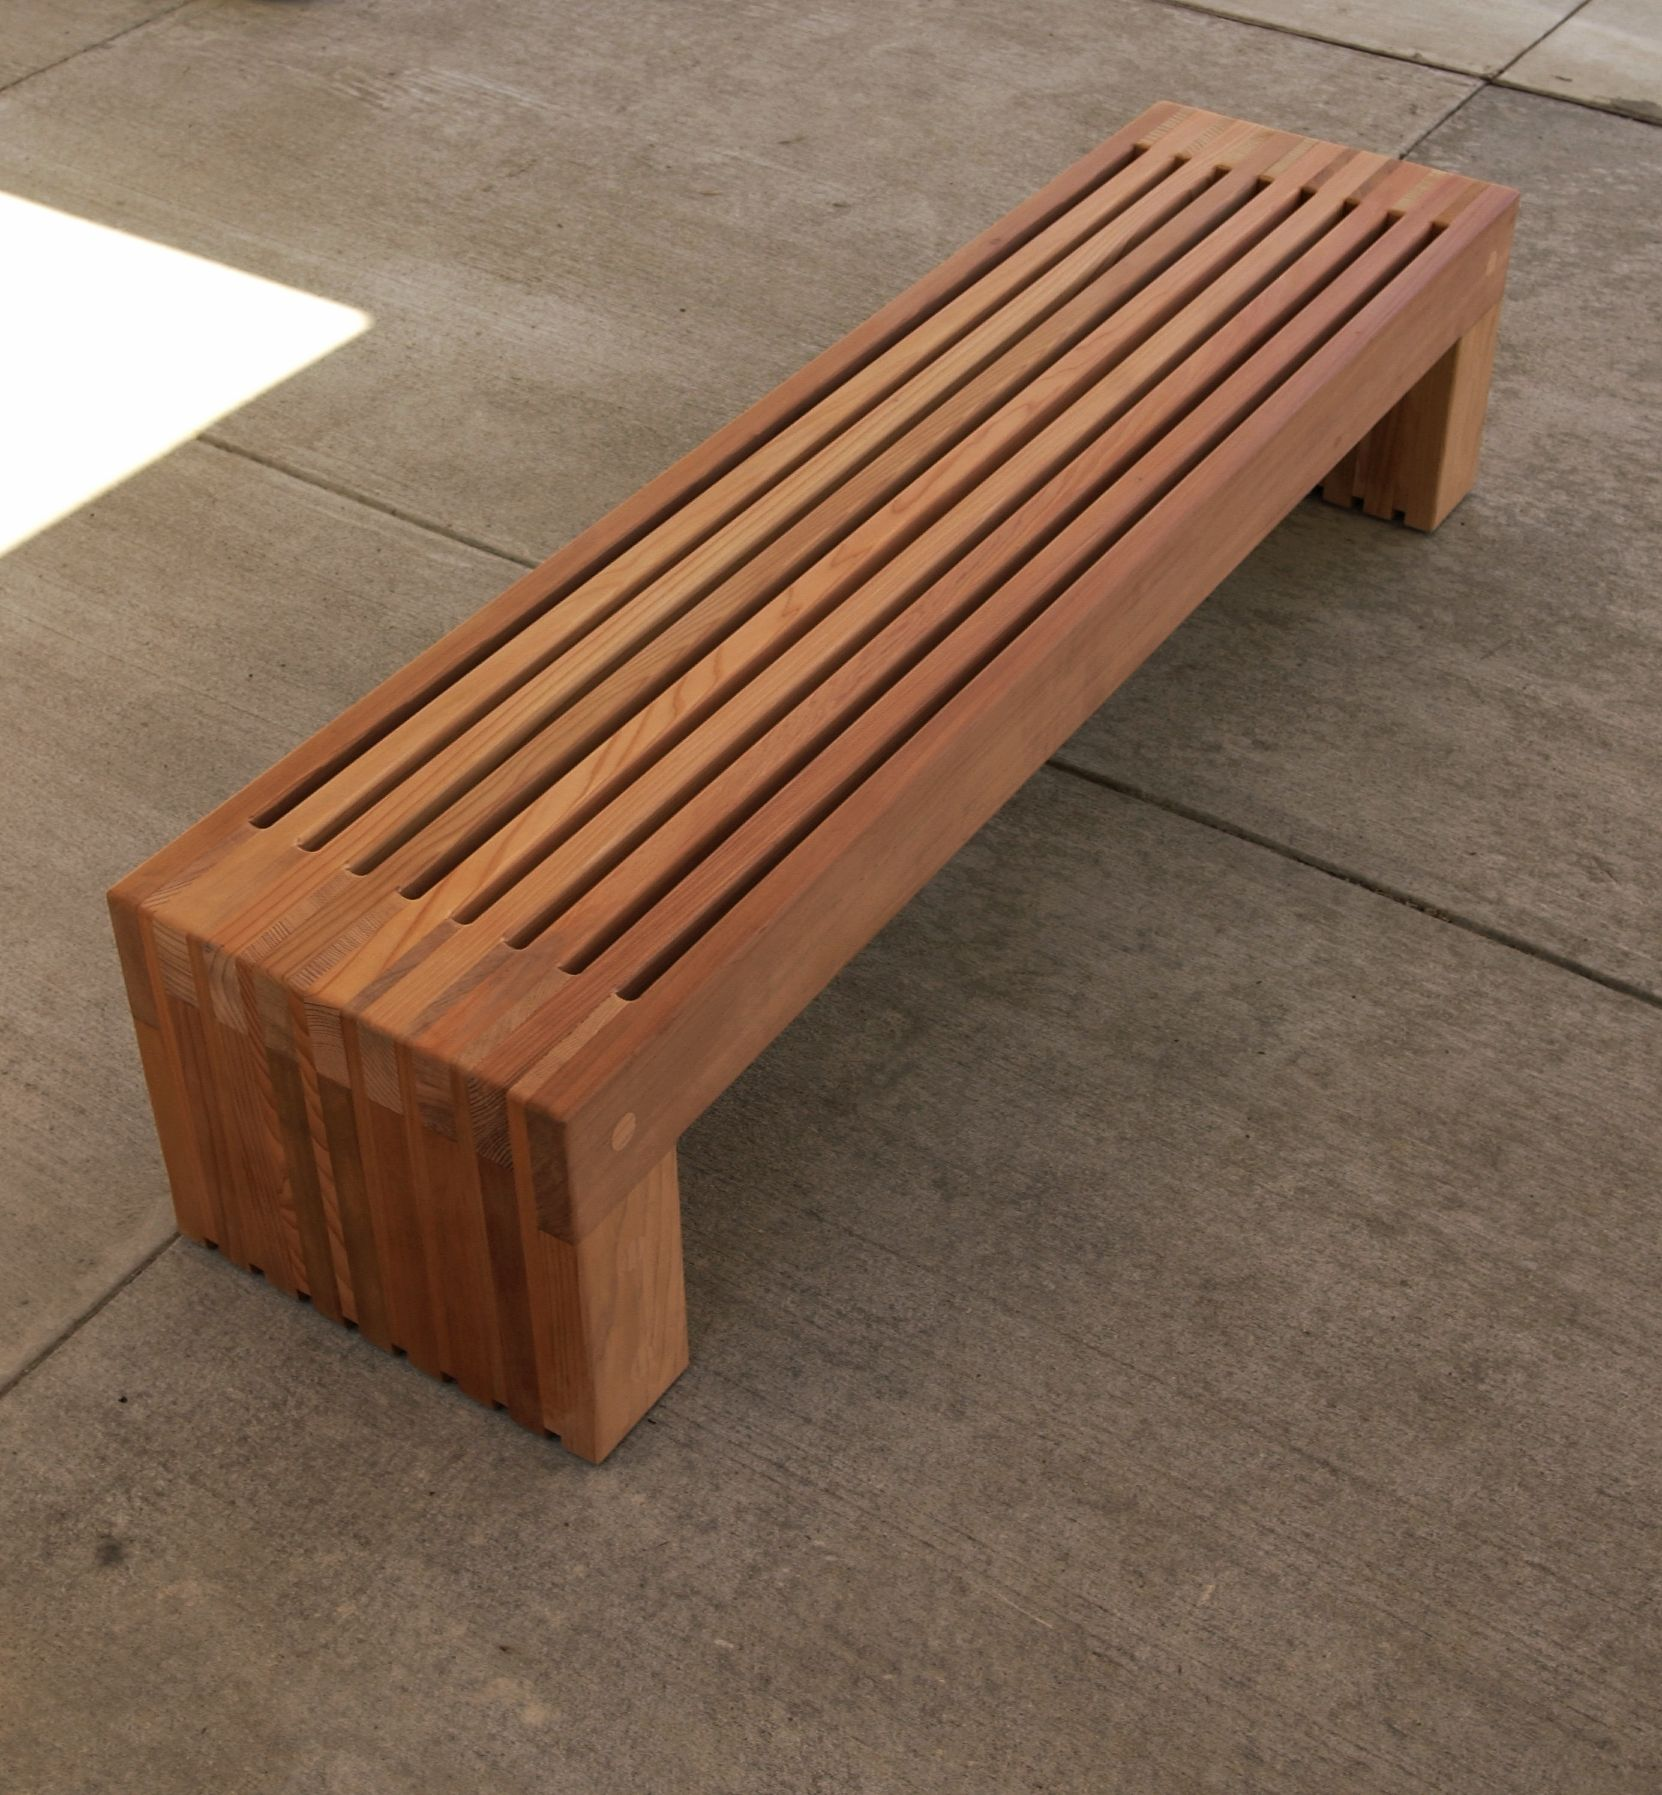 ana diy top modern projects furniture wood bench slat white outdoor